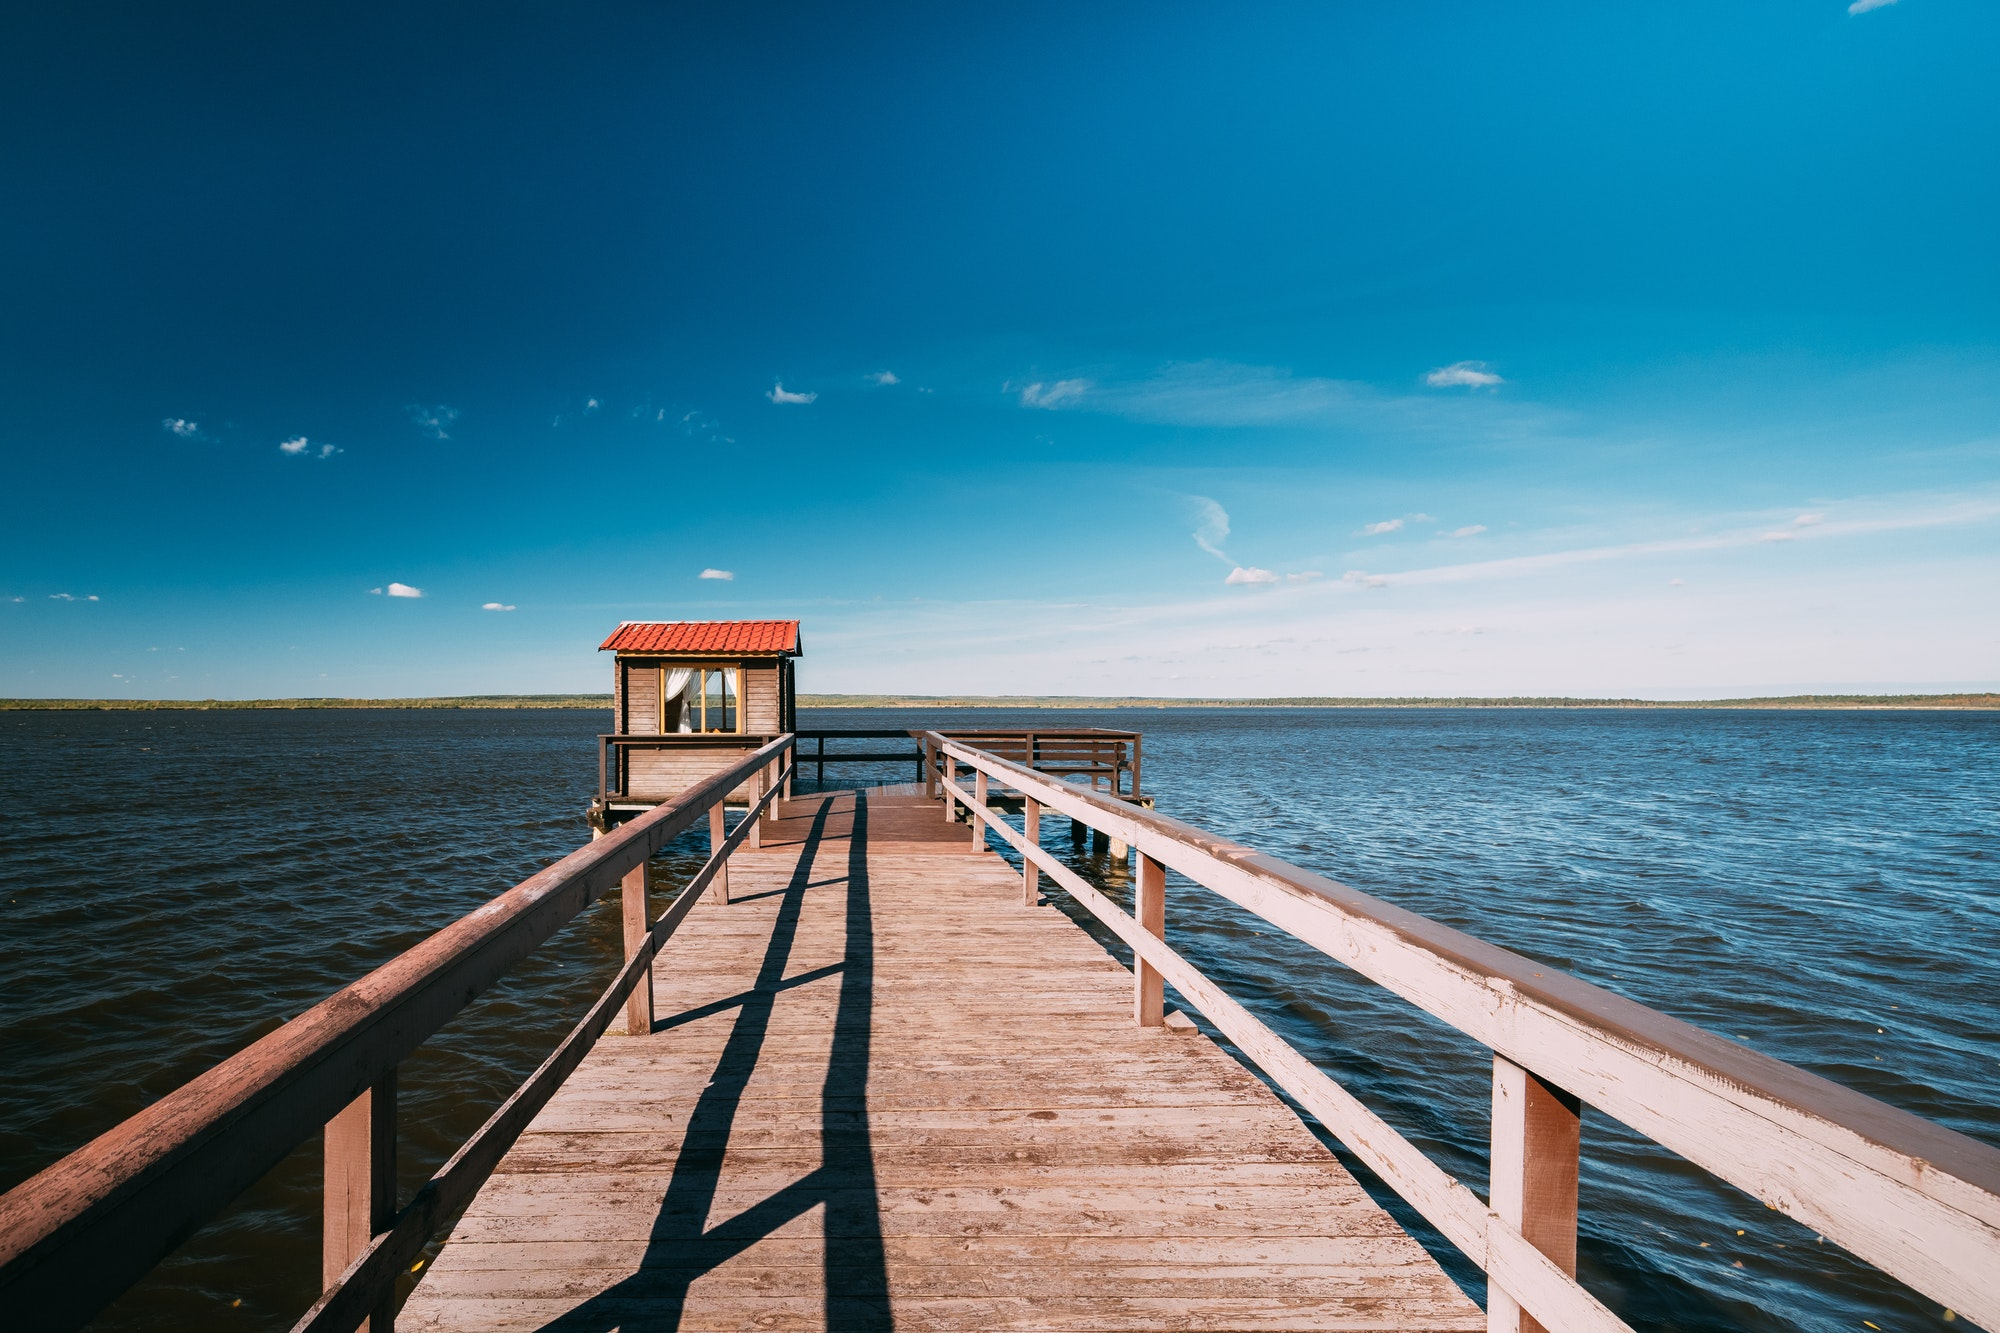 Wooden Pier For Fishing, Small House Shed And Beautiful Lake Or